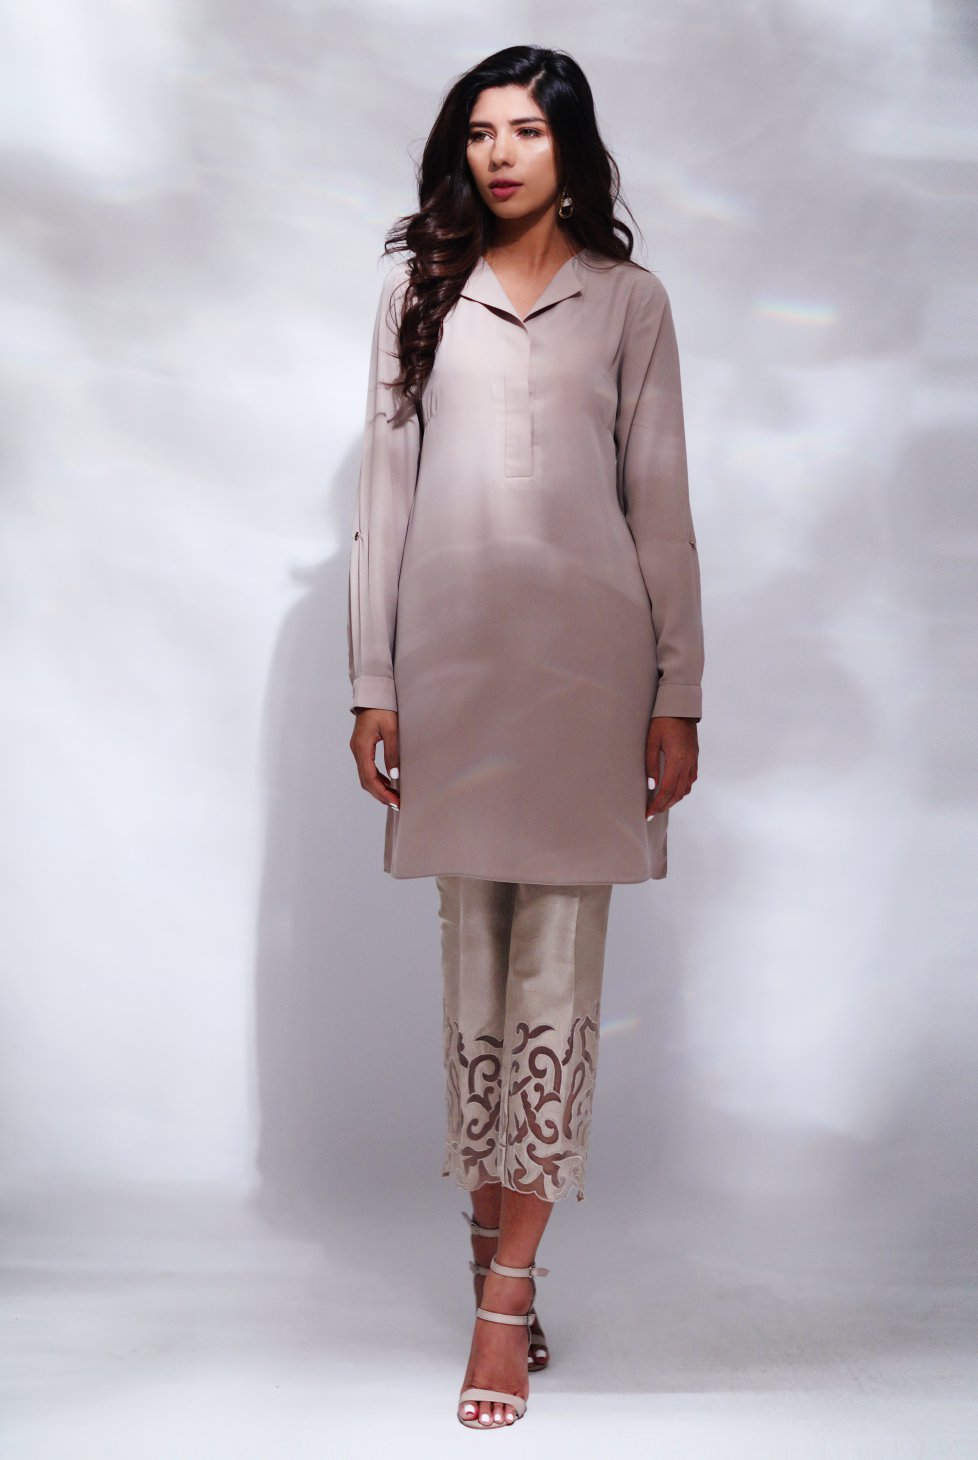 Natasha Kamal - Mell Beige Soft Collared Tunic & Handcrafted Applique Pants